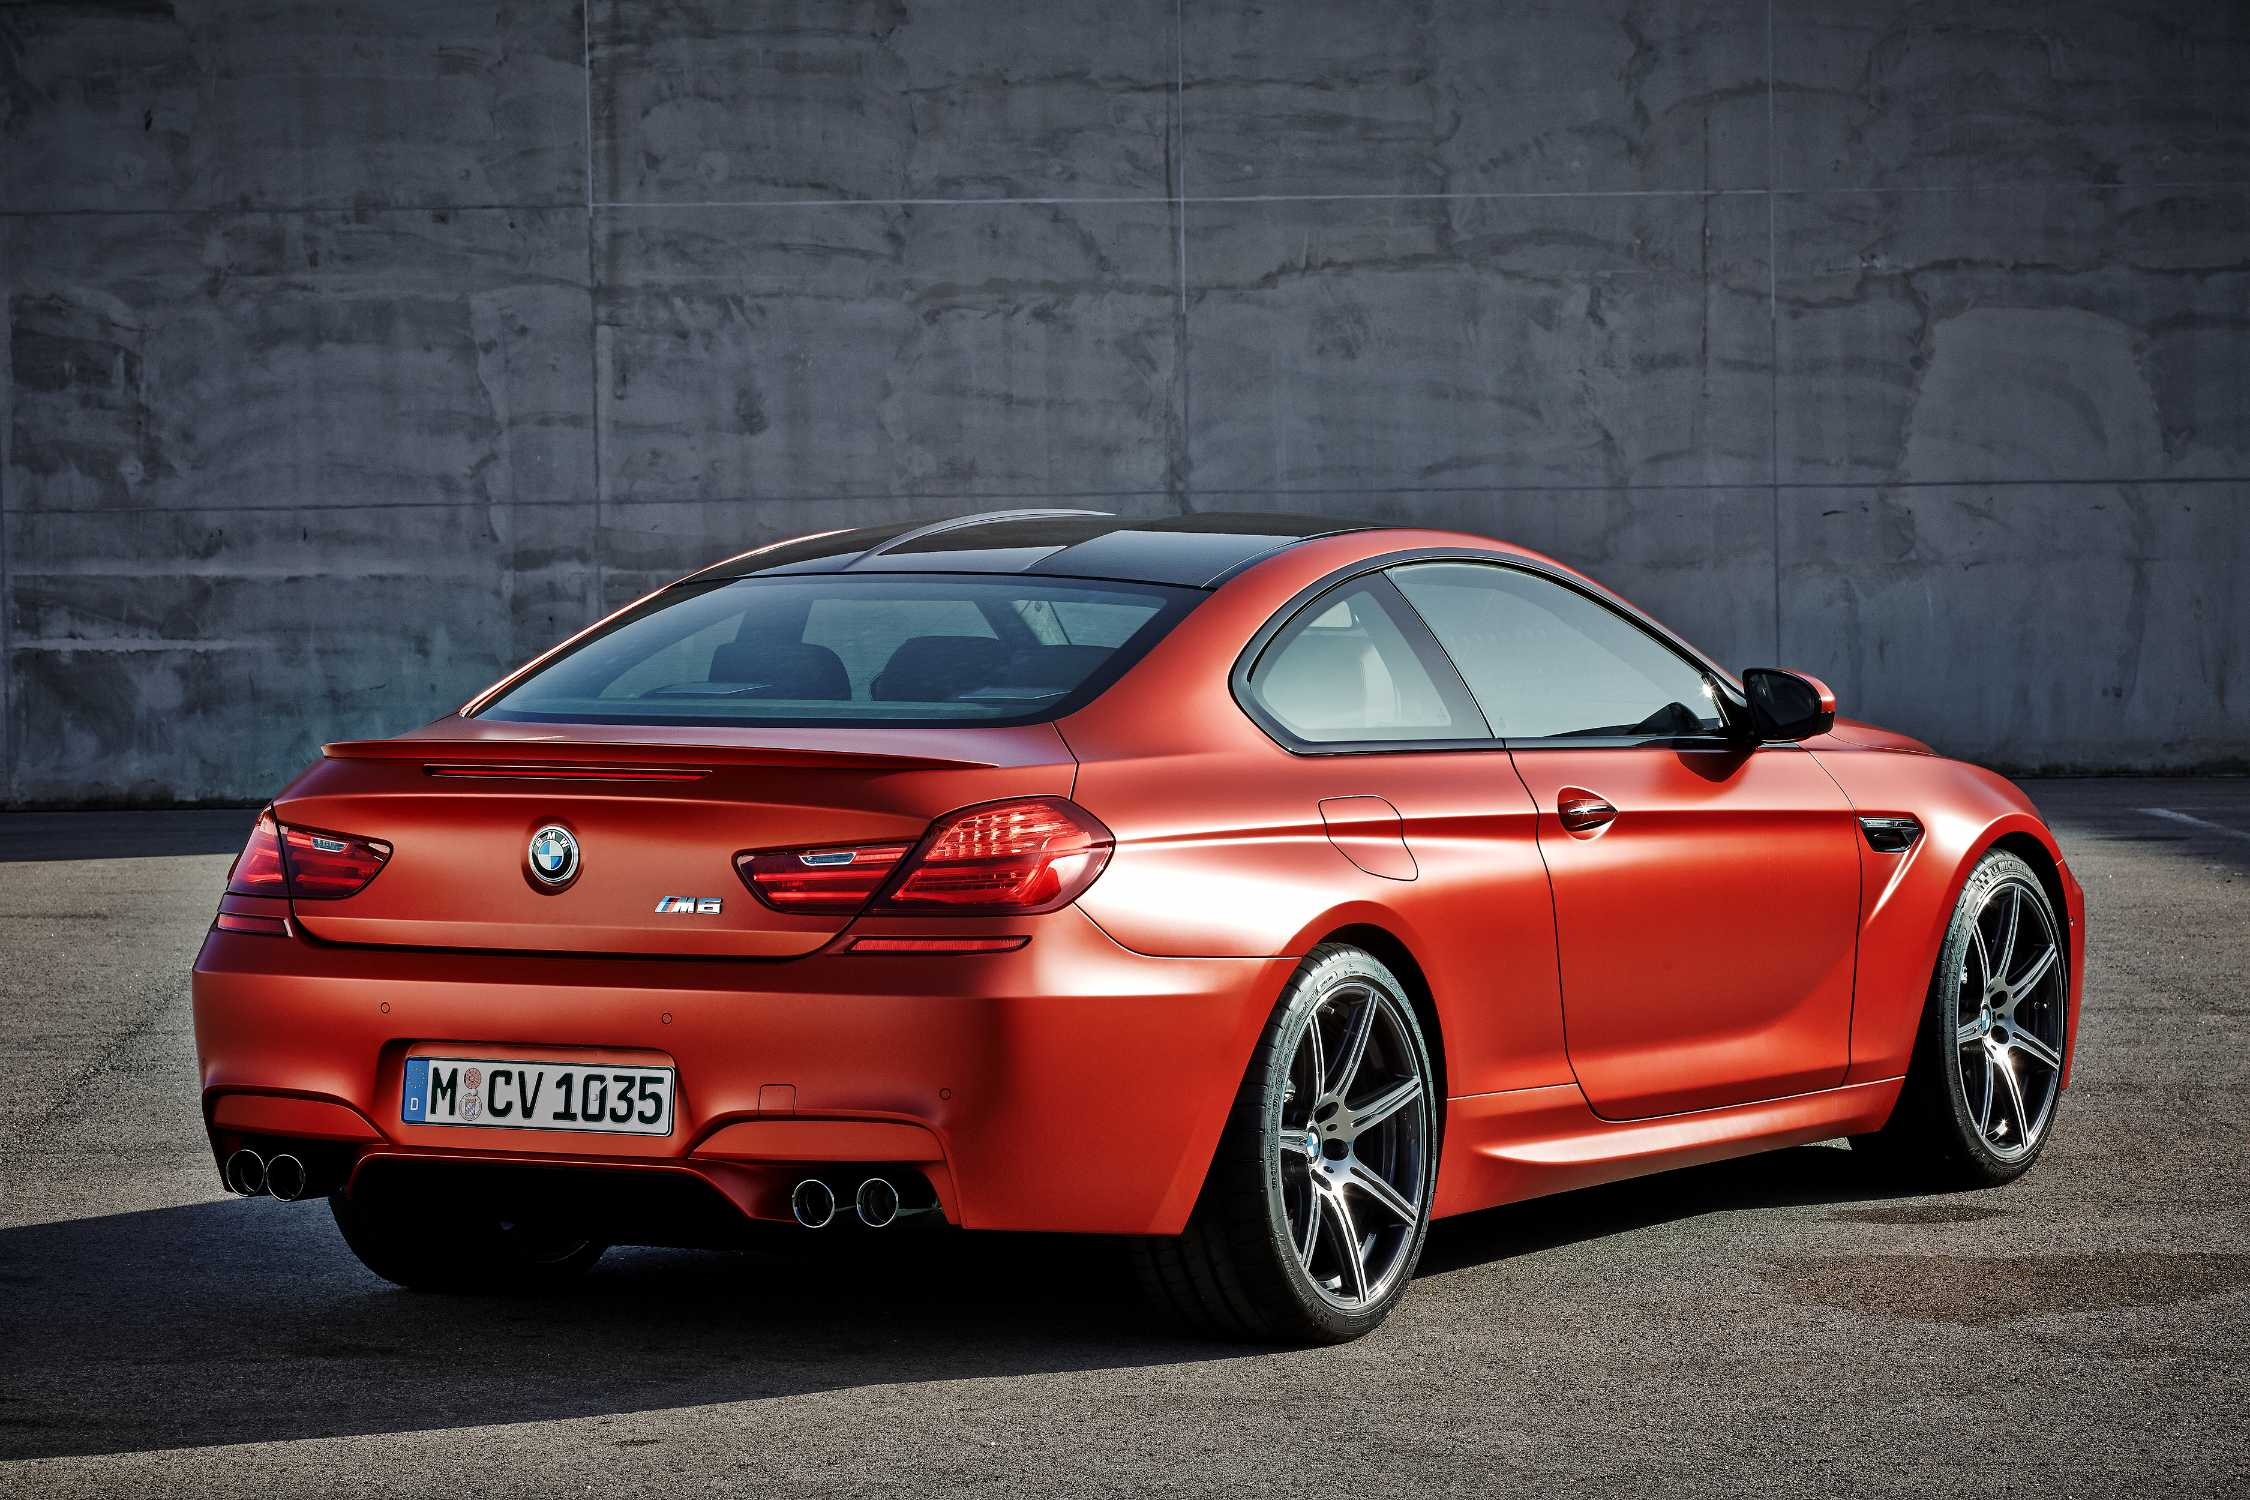 The New Bmw M6 Coupe New Bmw M6 Convertible And New Bmw M6 Gran Coupe